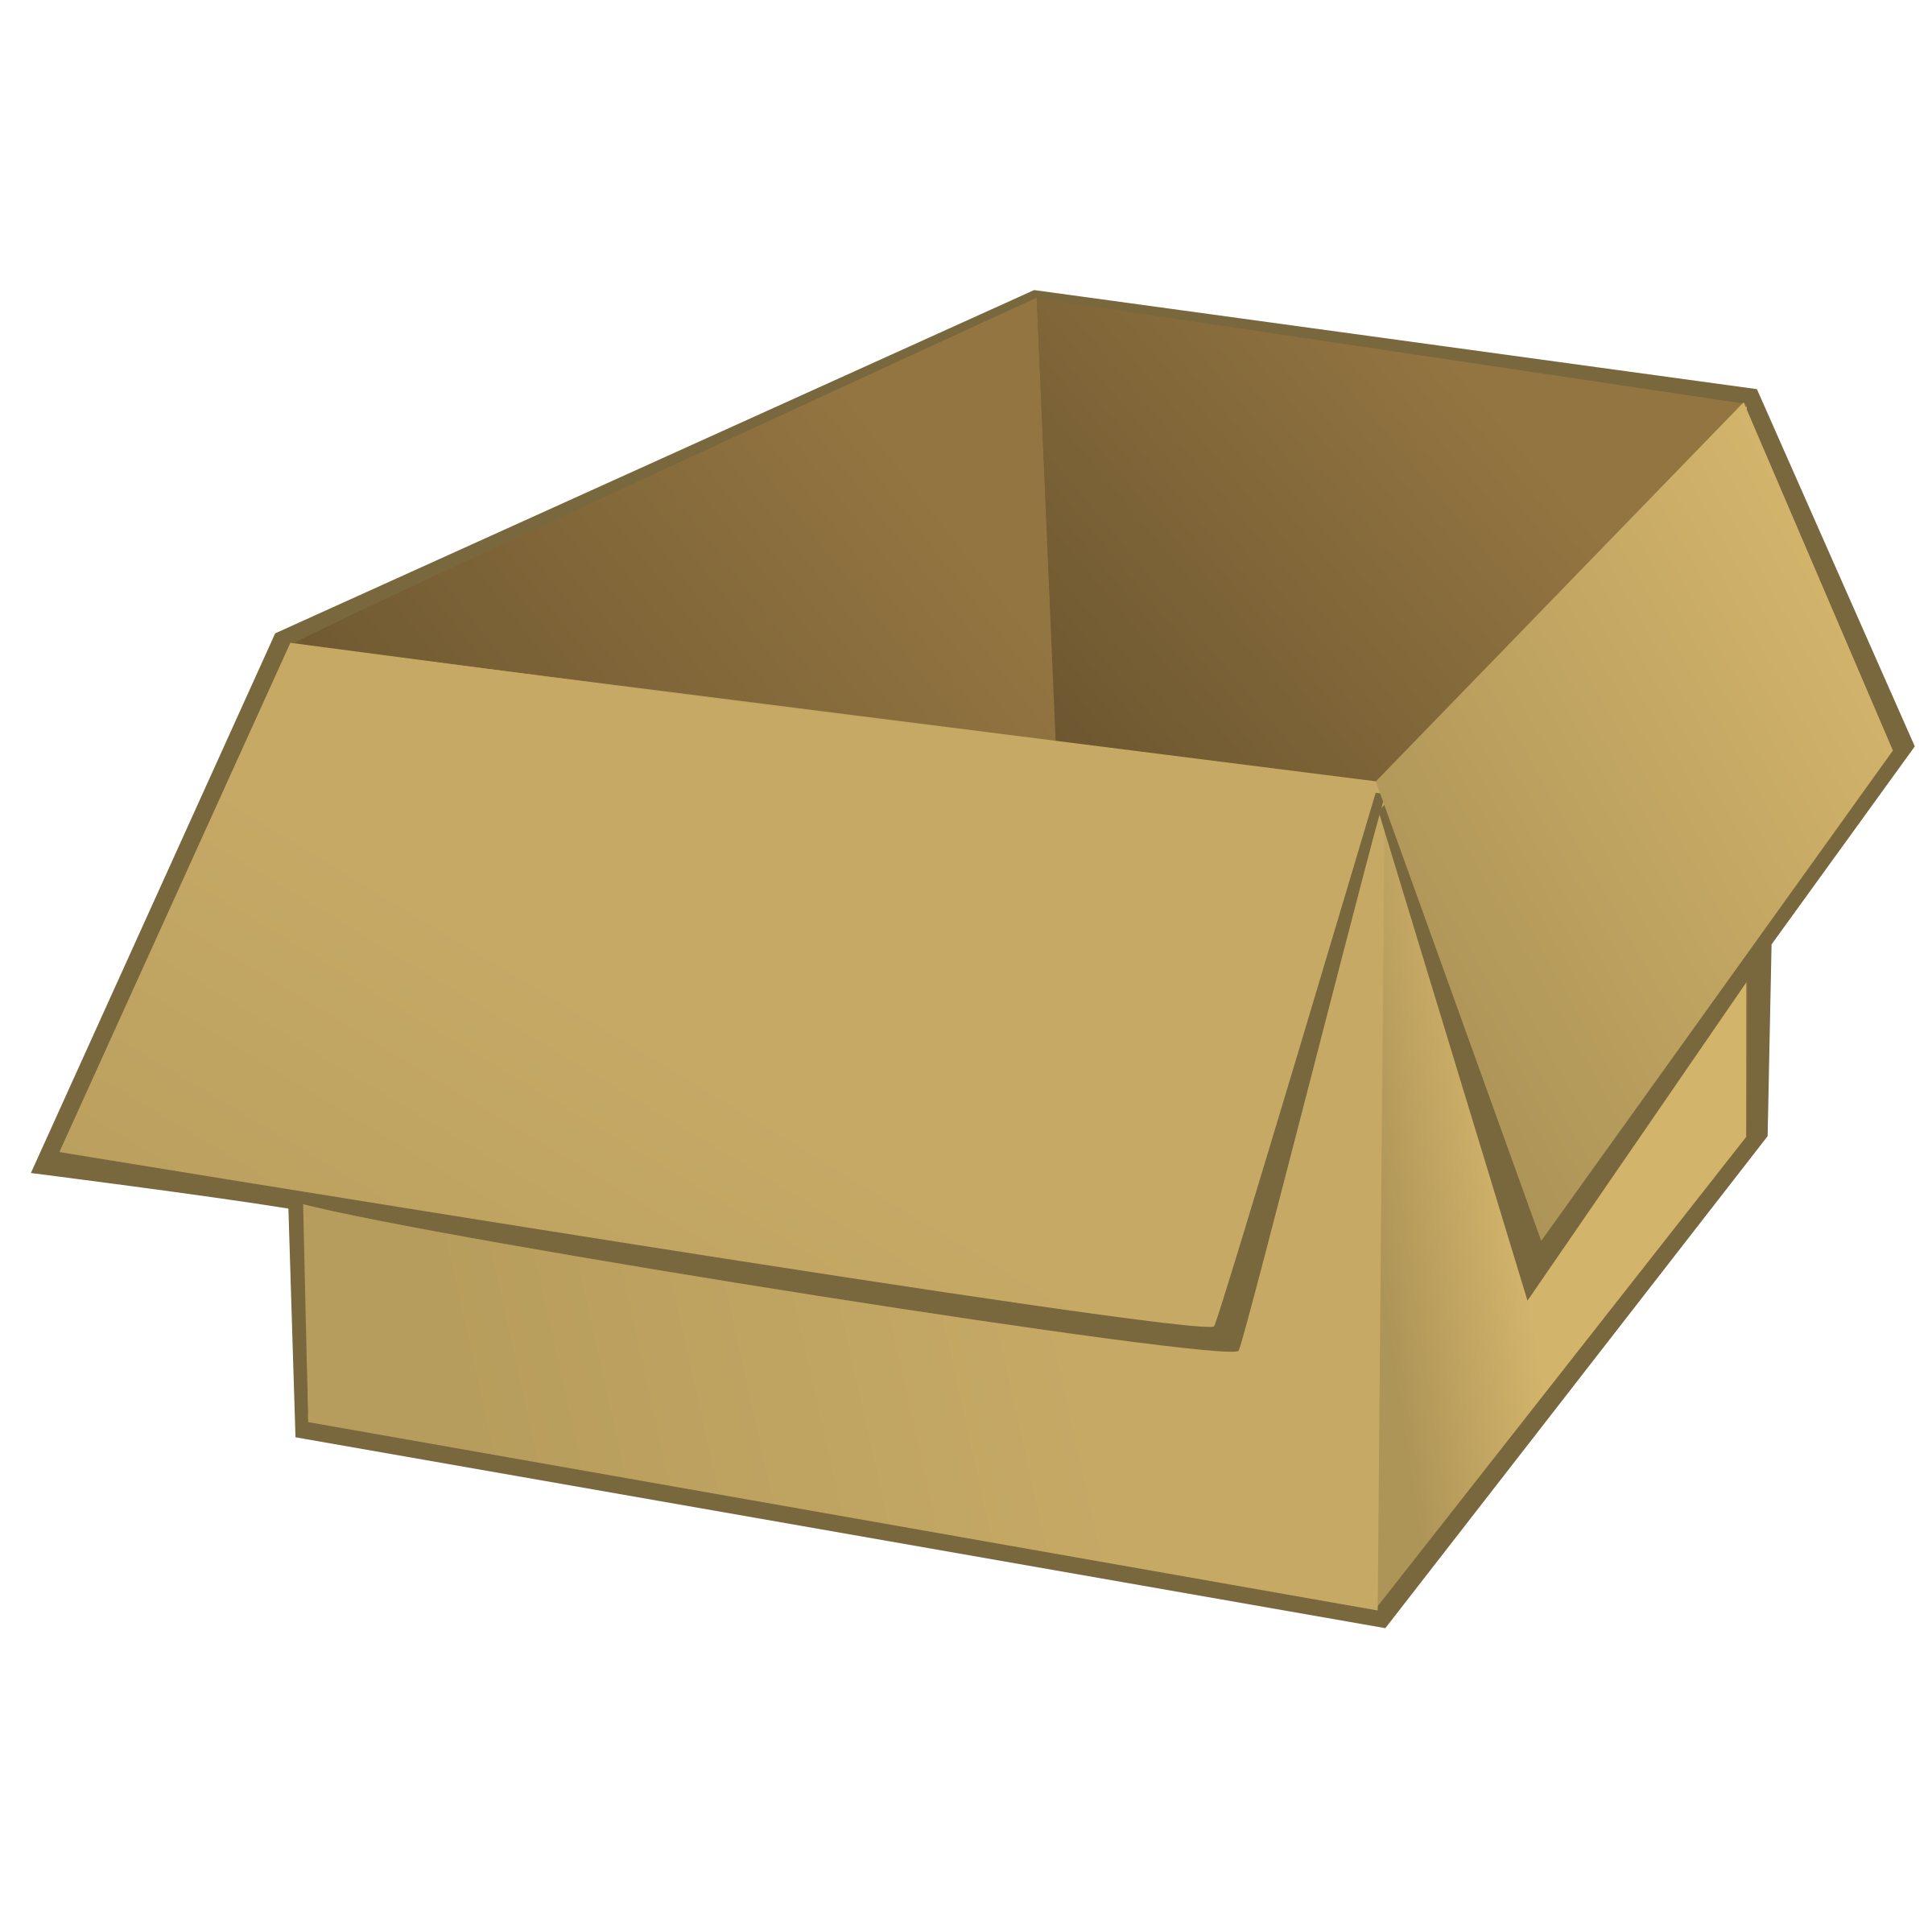 collection of png. Clipart box rectangular box